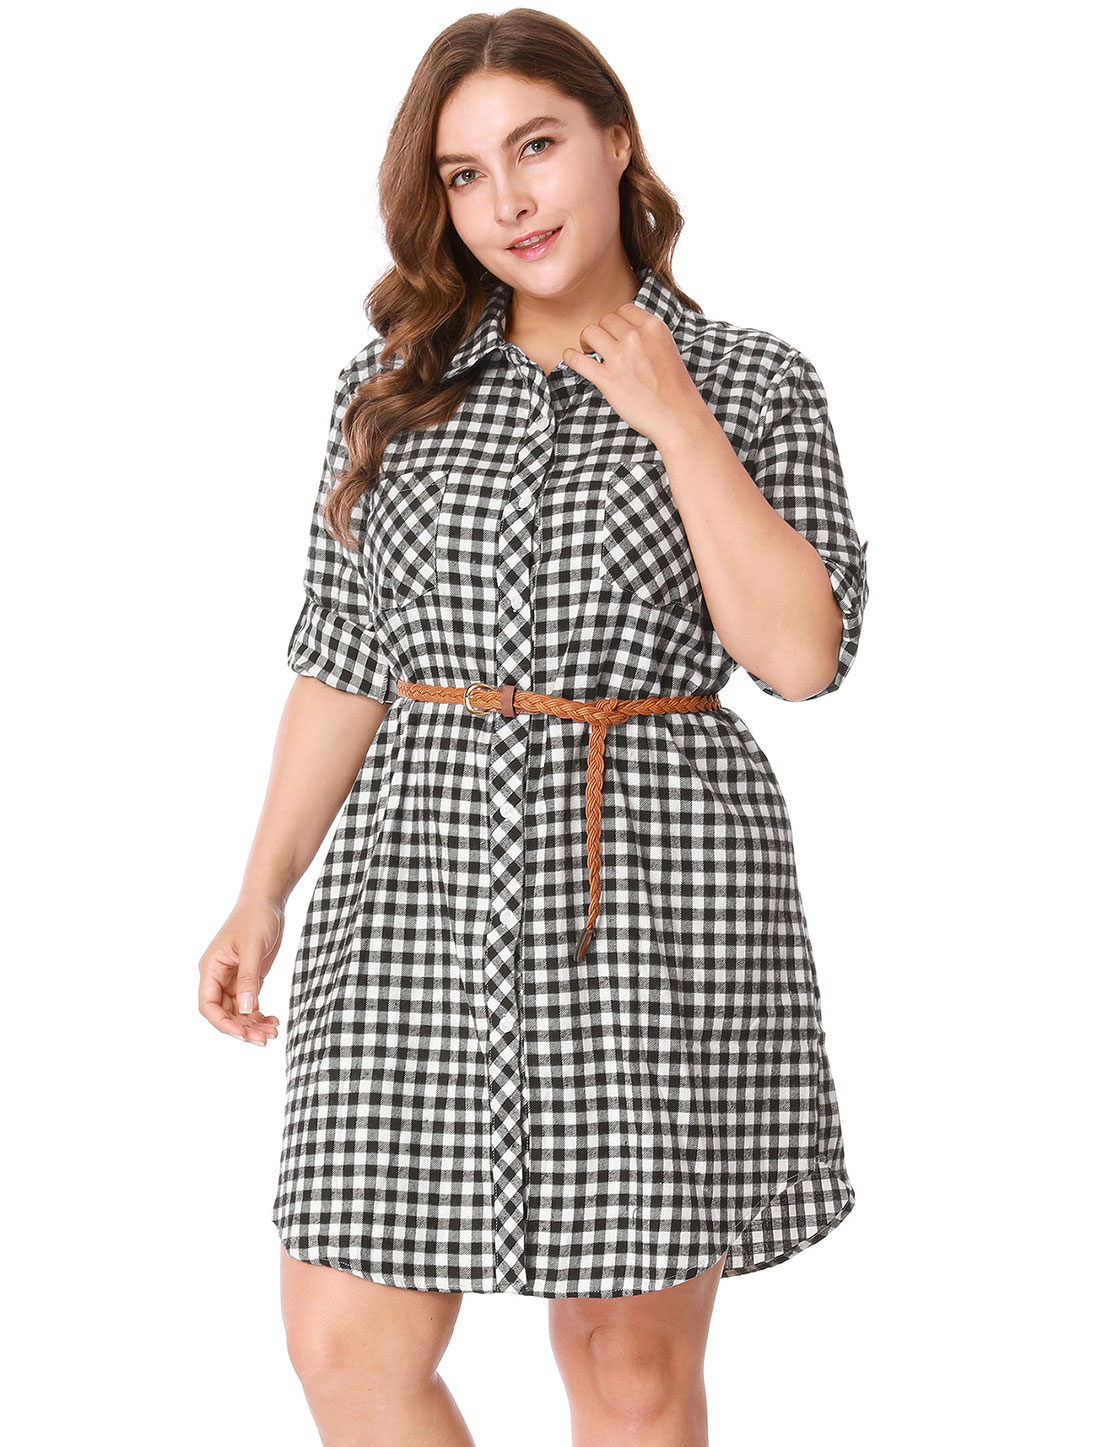 Women Plus Size Roll Up Sleeves Belted Plaid Shirt Dress Black White 2X